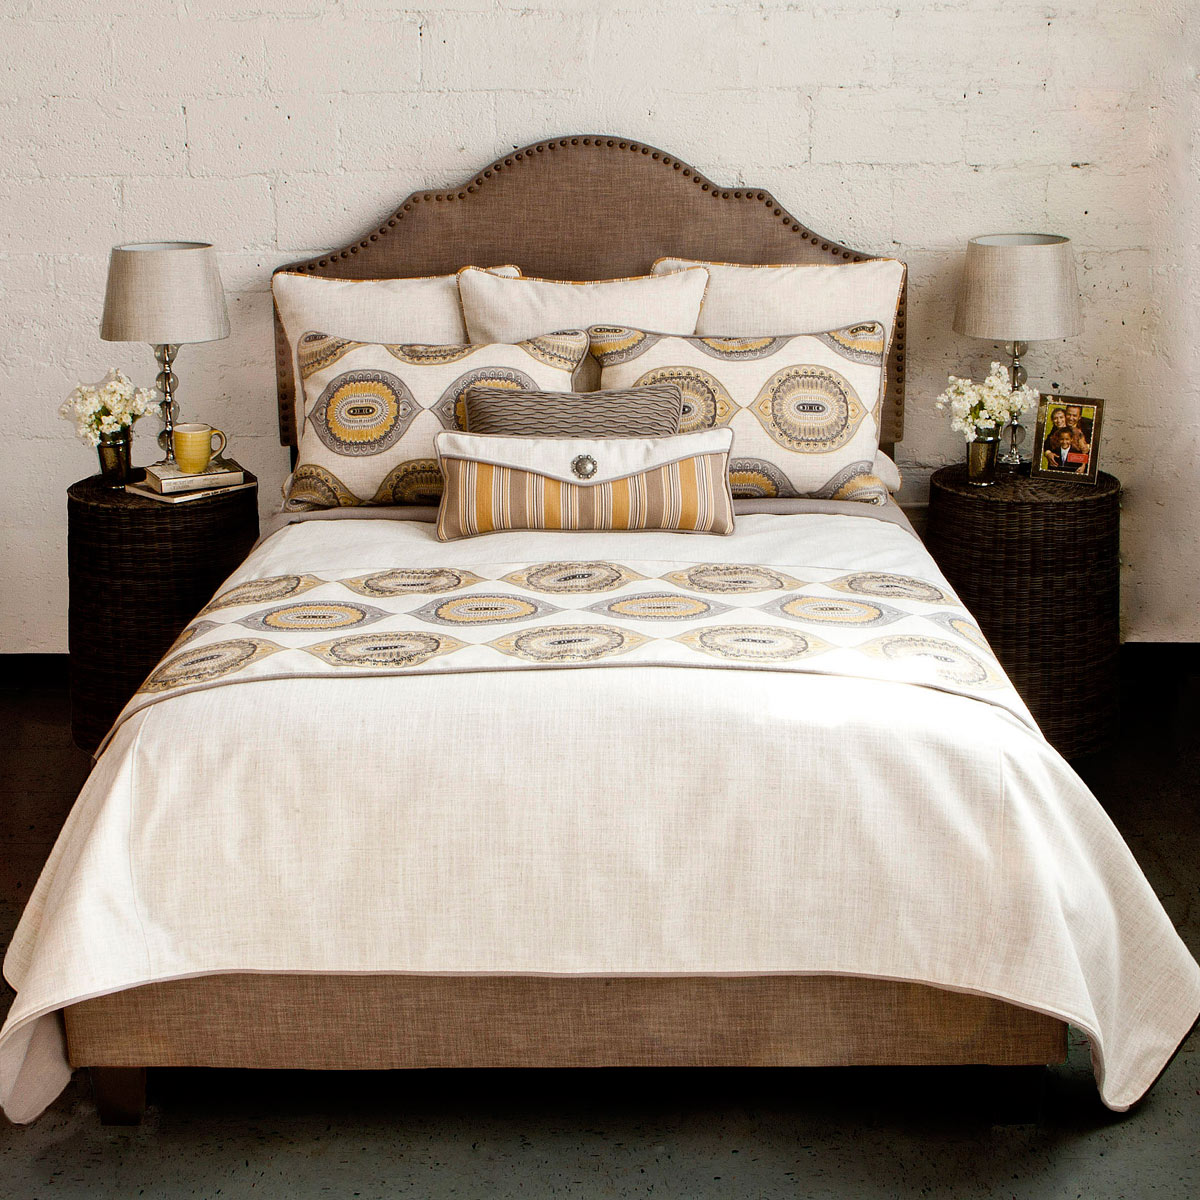 Coastal Bed Sets: California King Plus Size Mumbai Luxury Bed Set ...